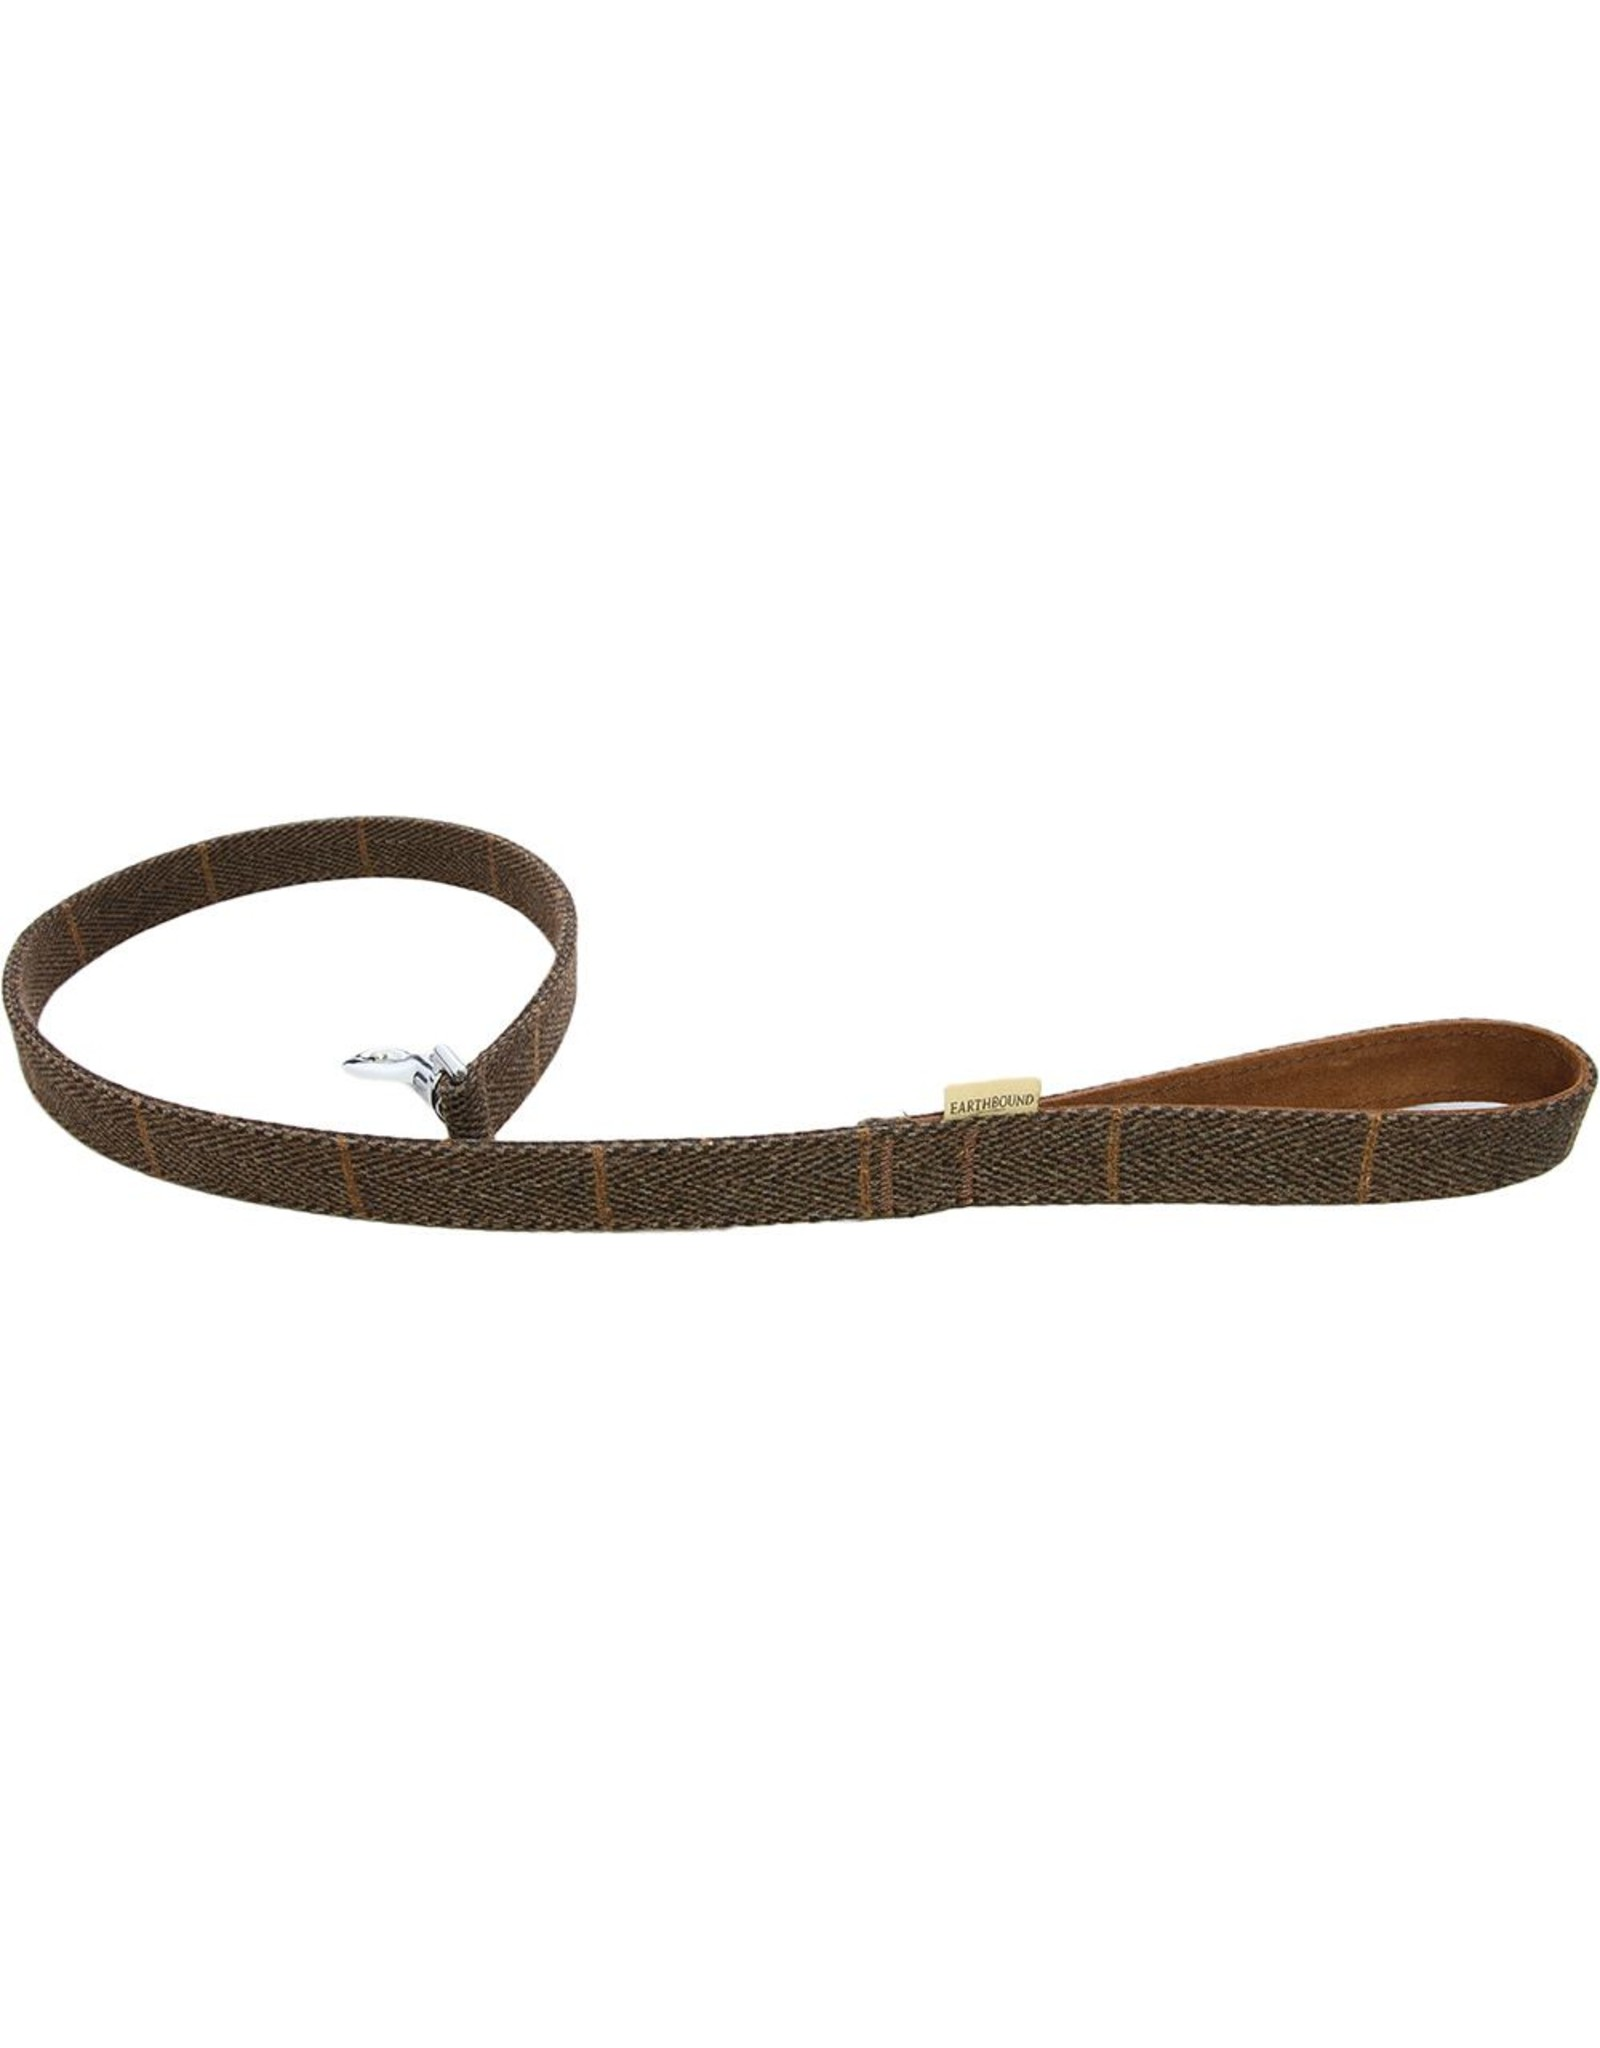 Earthbound Tweed Dog Lead in Brown *CLEARANCE